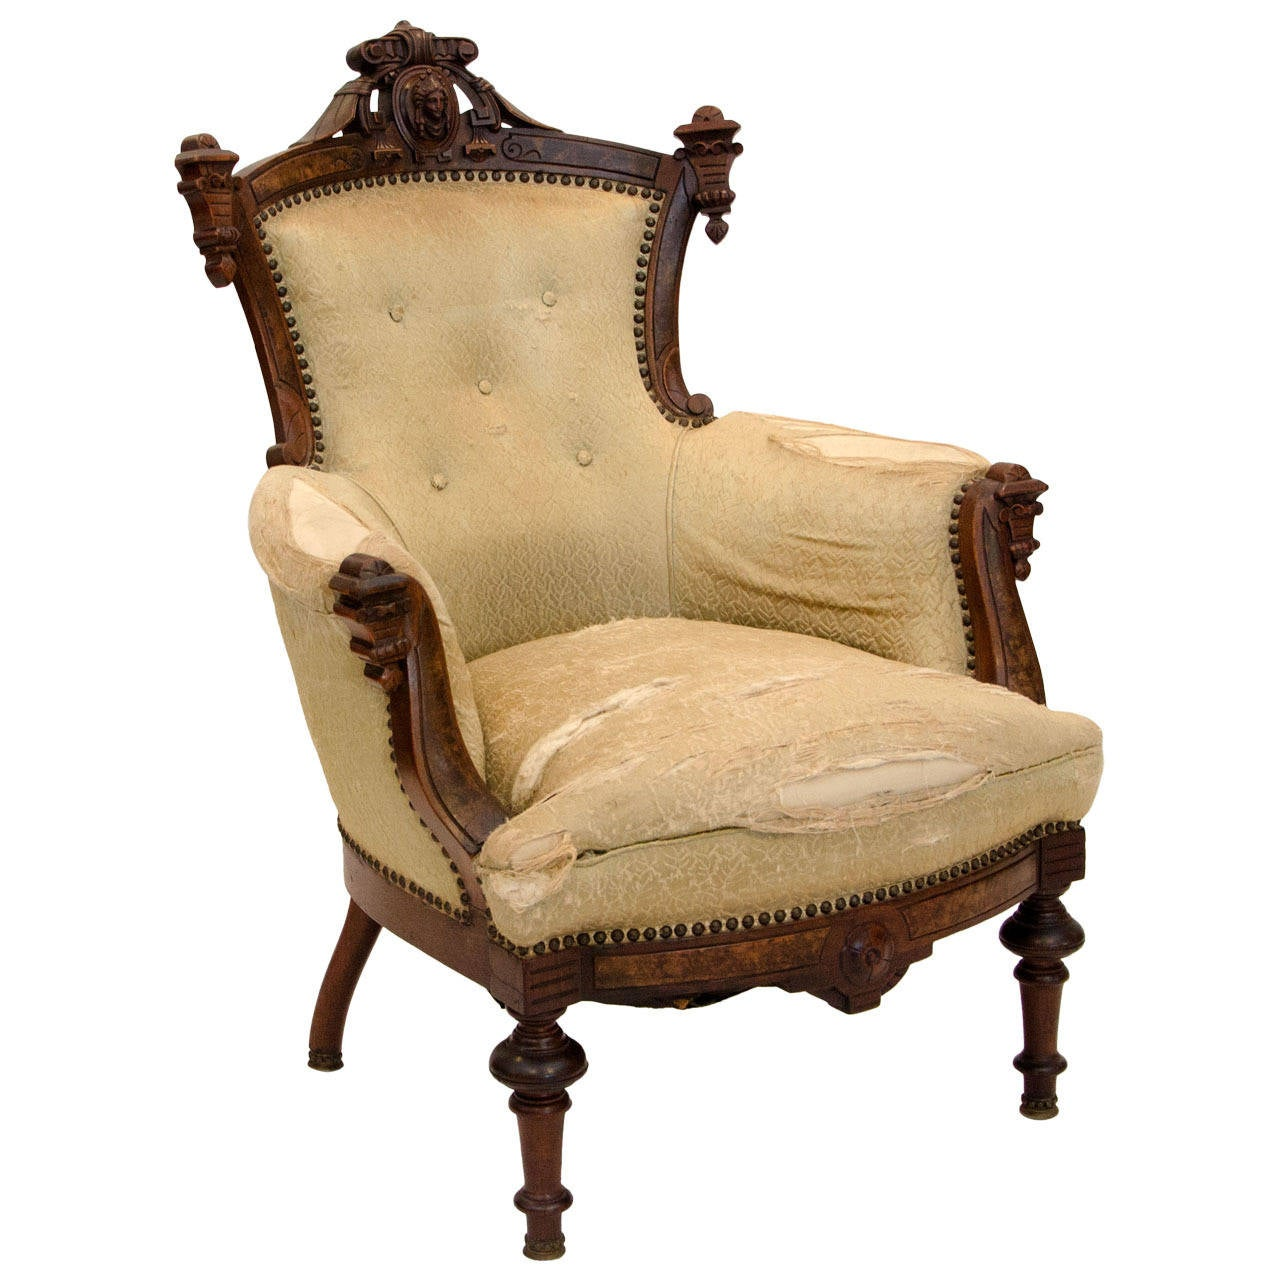 Incroyable American Walnut Victorian Parlor Chair For Sale